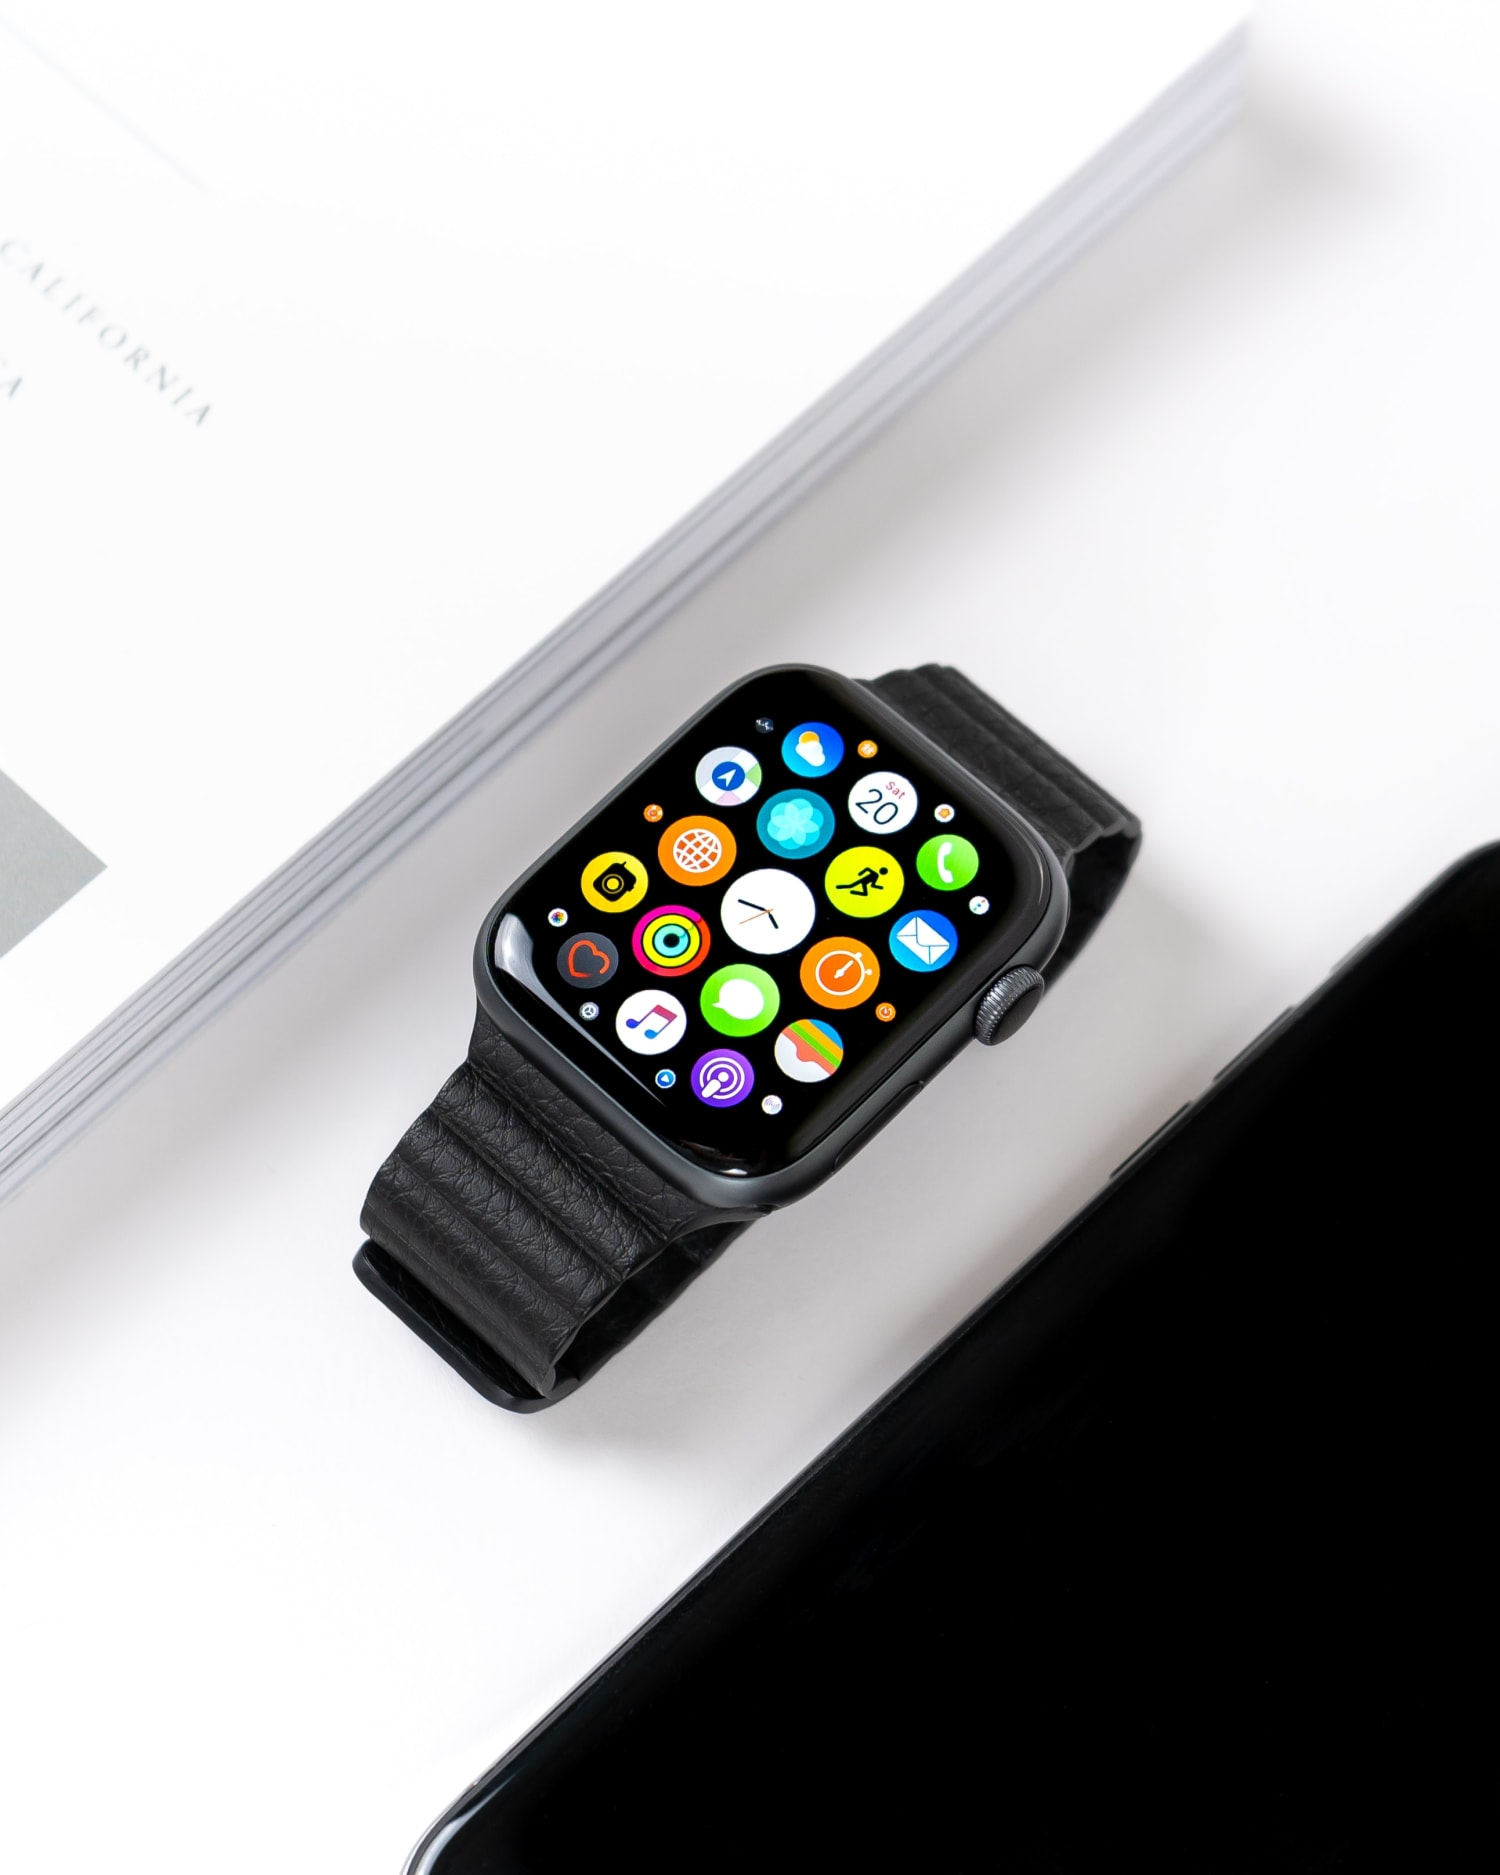 upcoming-apple-watch-6-monitors-your-blood-oxygen-levels-20200731-1